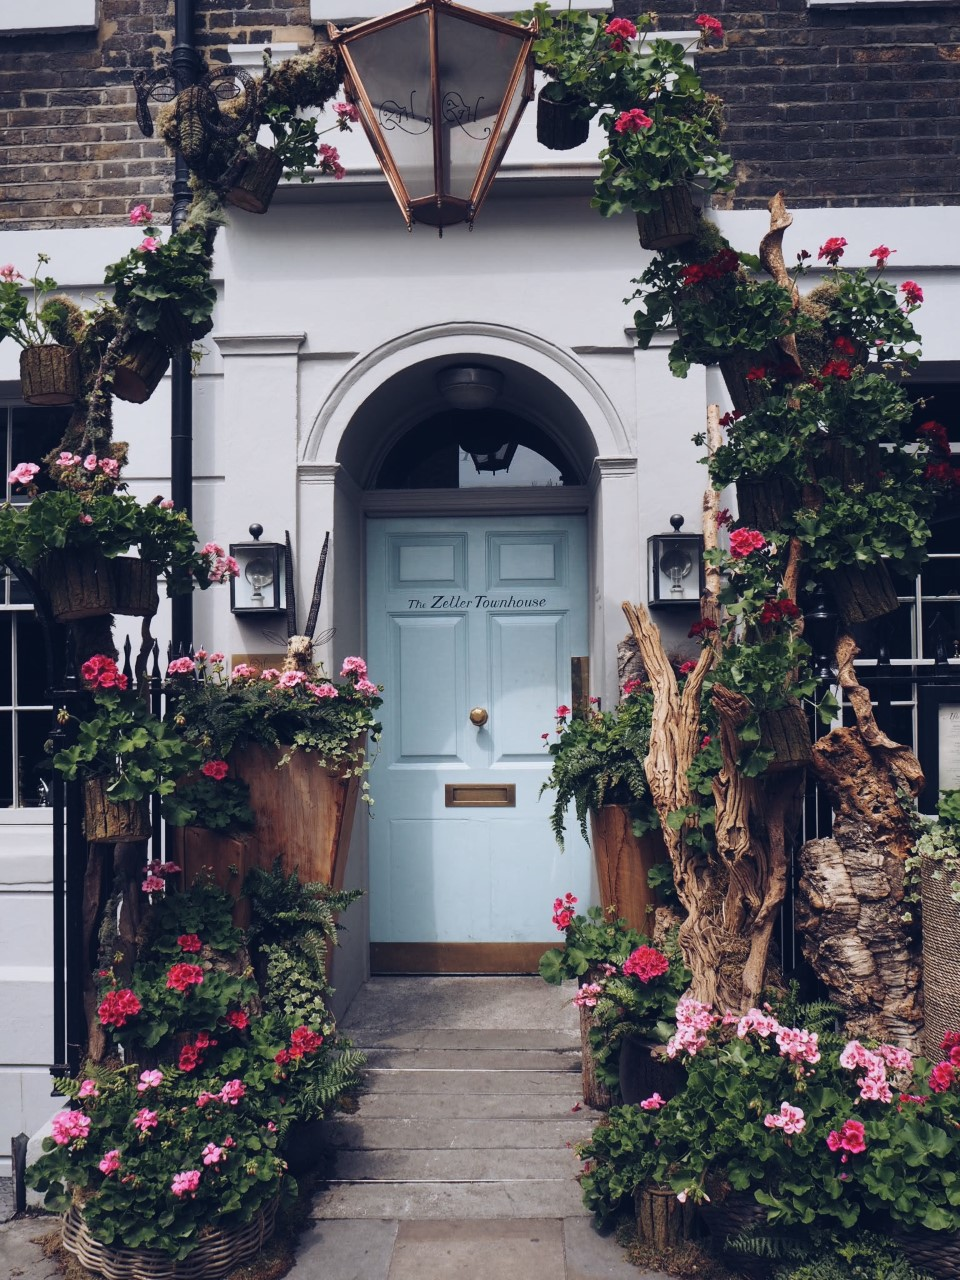 The Zetter Townhouse Hotel